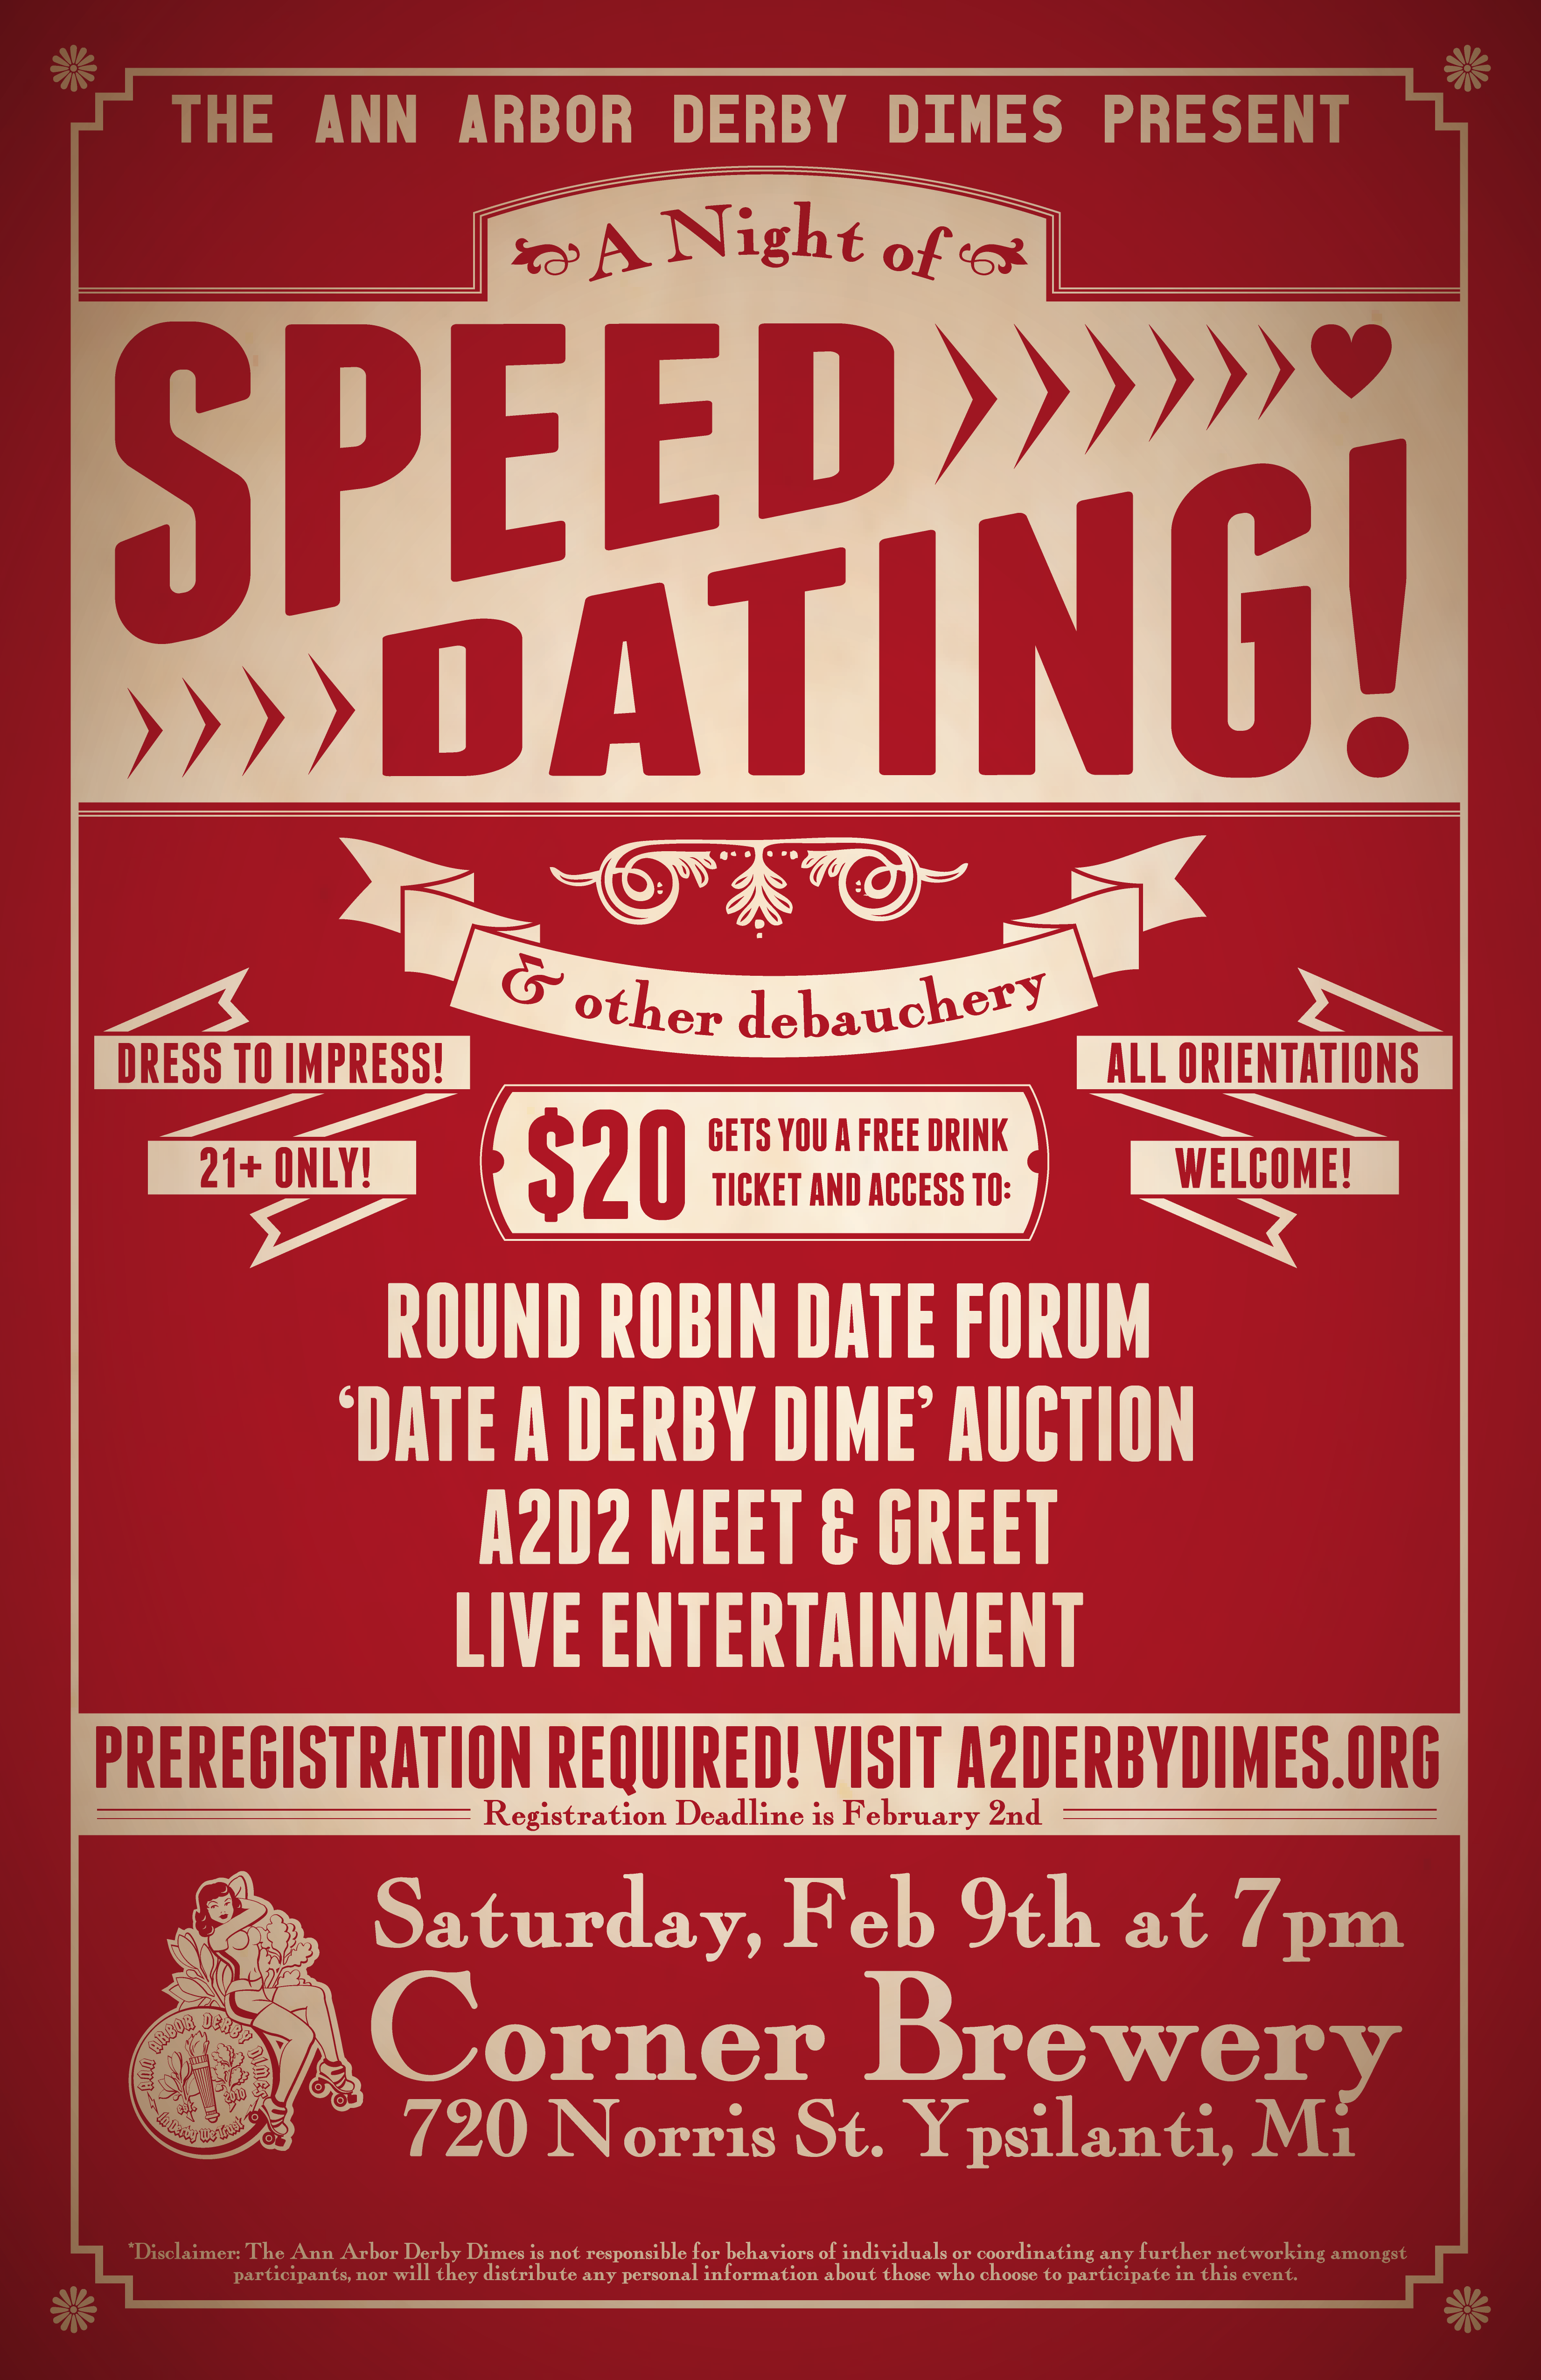 Speed dating in ann arbor mi are right